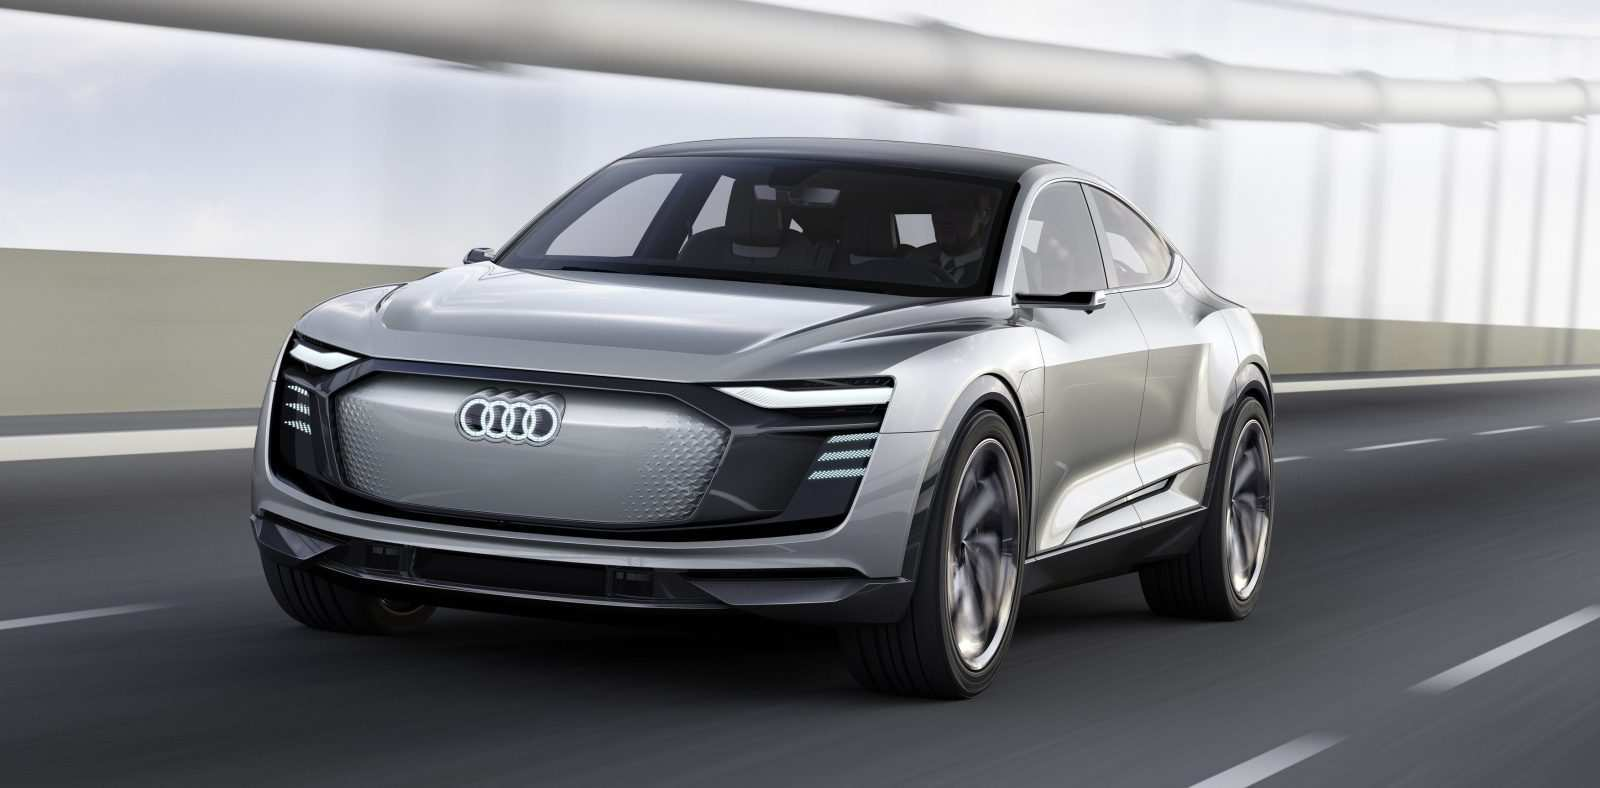 26 All New Audi New Electric Car 2020 Engine